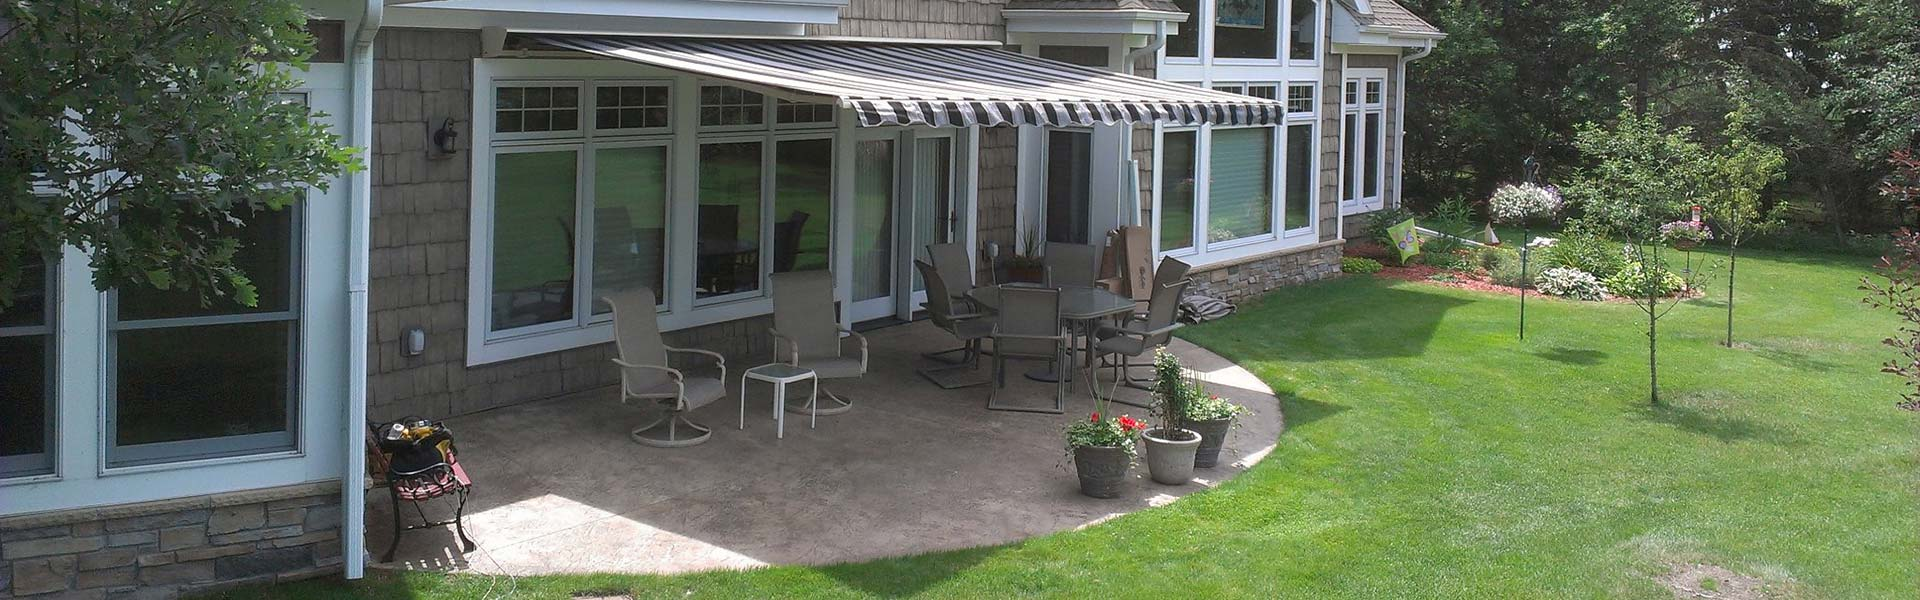 retractable awnings in melbourne fl automatic awning